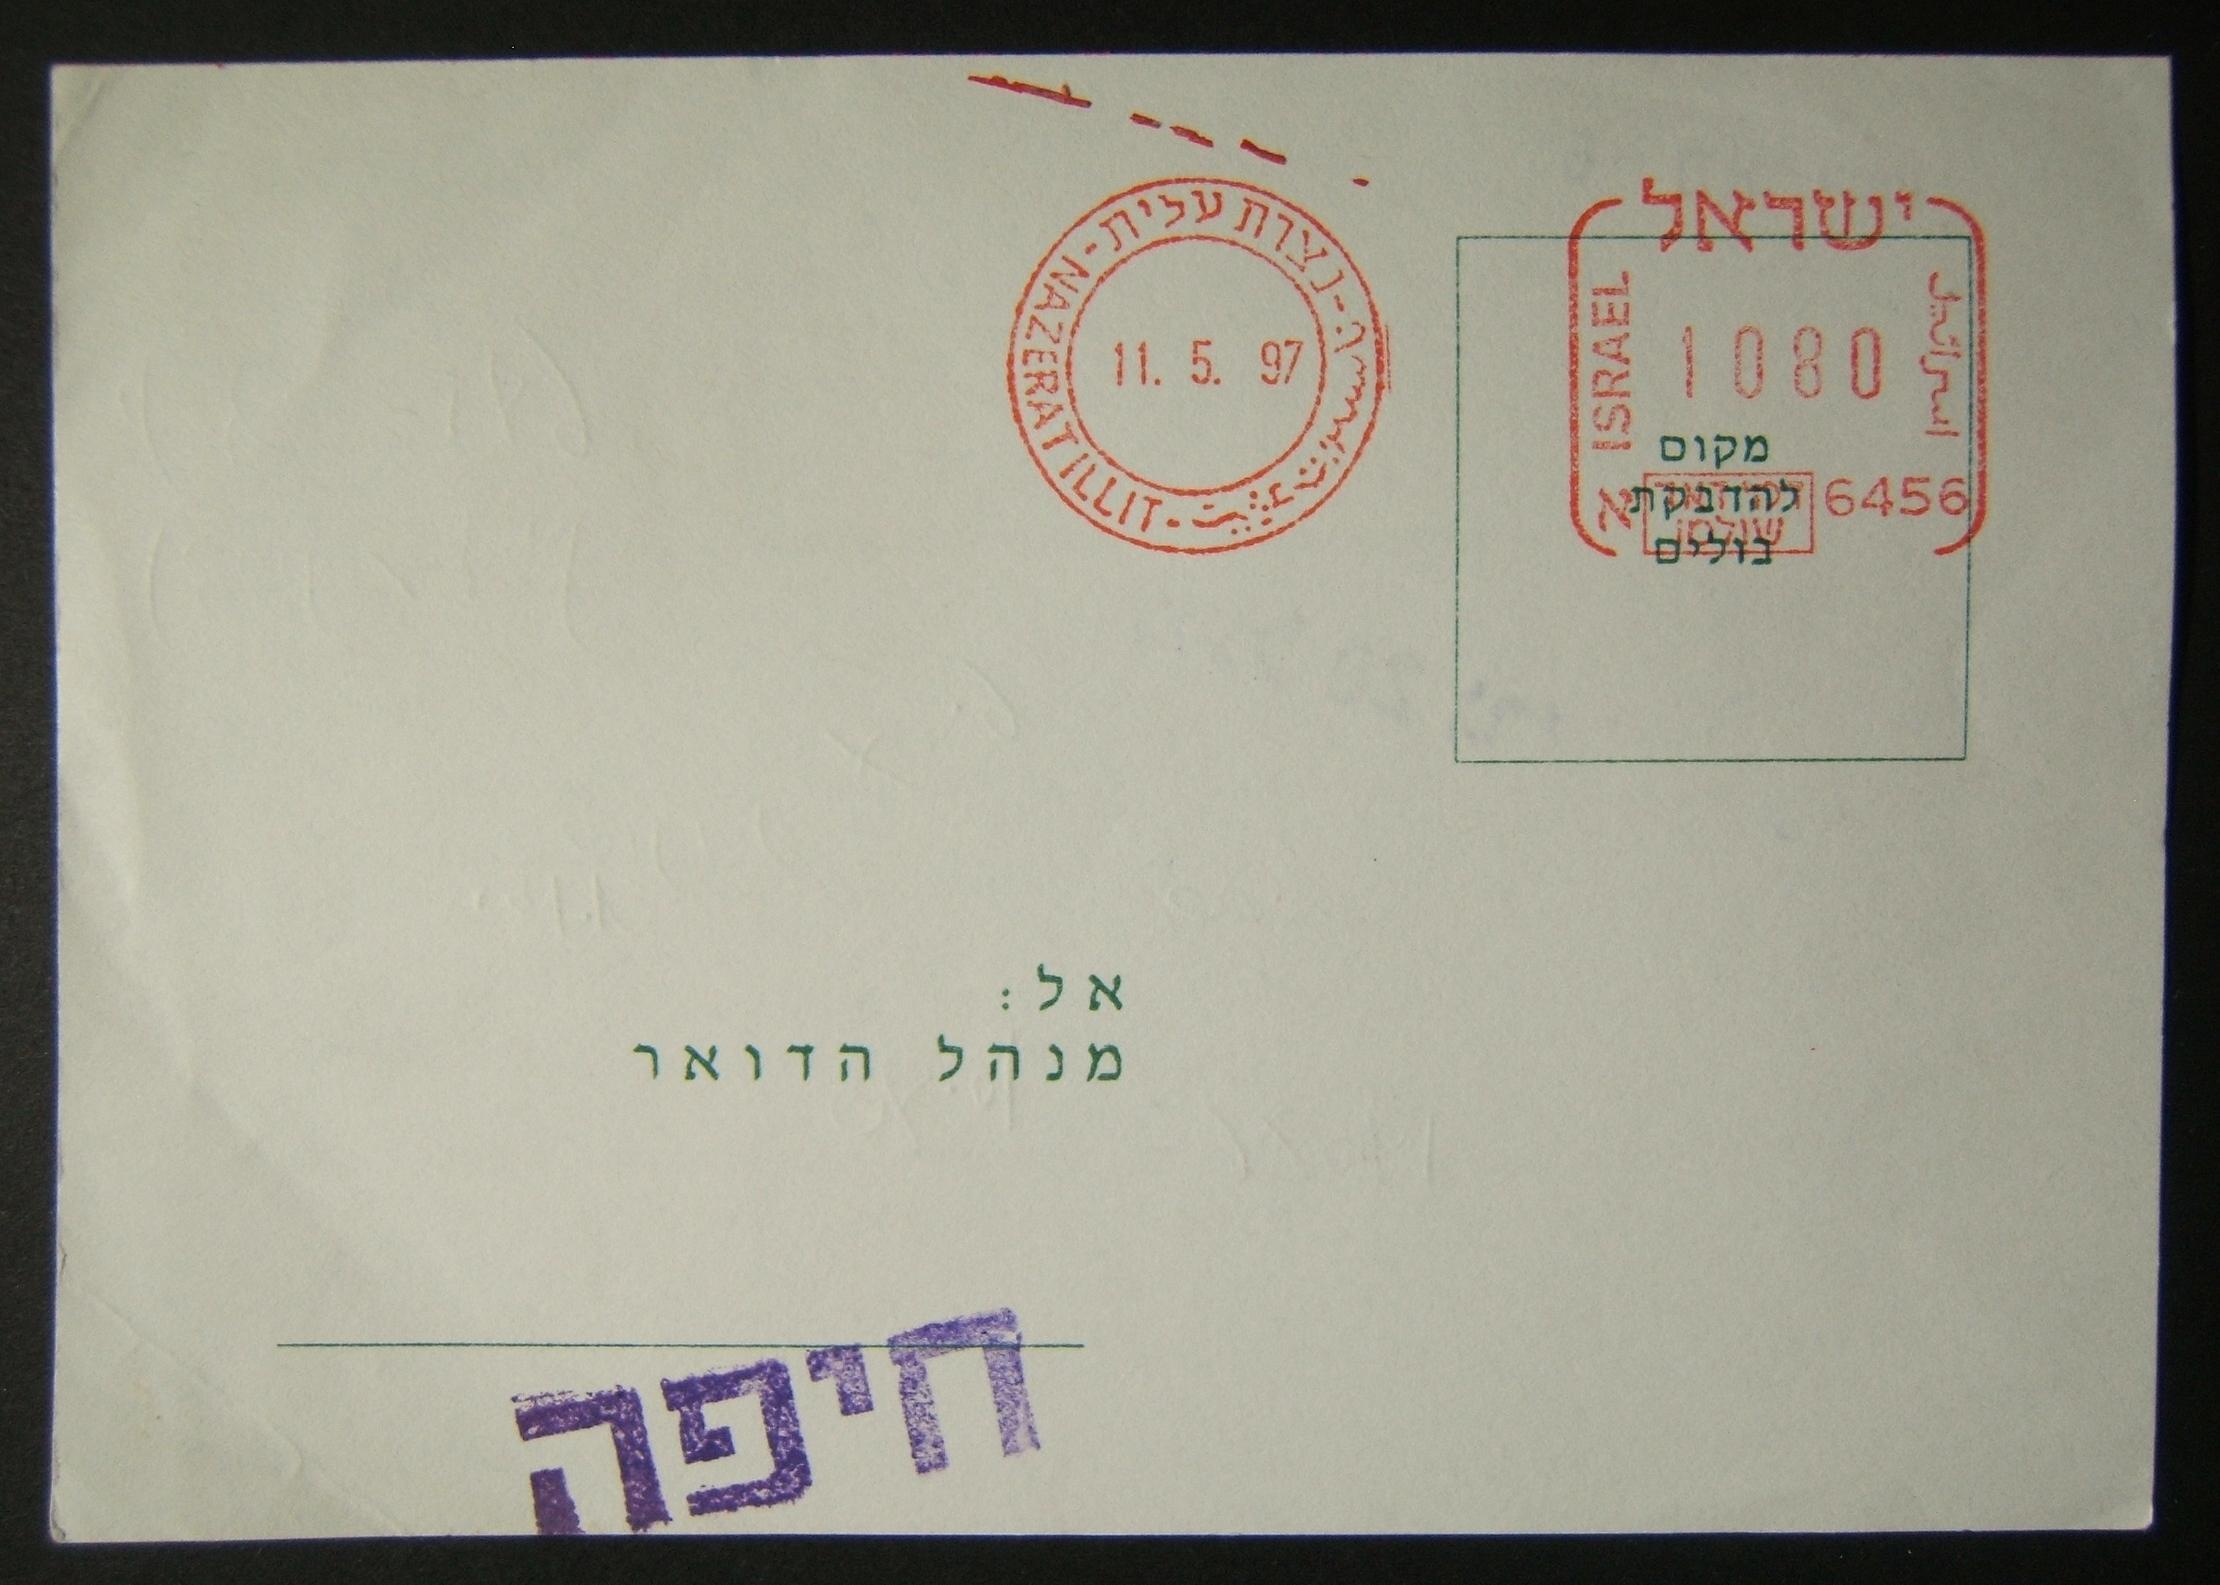 1996 DO-77 rate period multiple mail franked taxation notice: 6 MAY 1996 HE dated